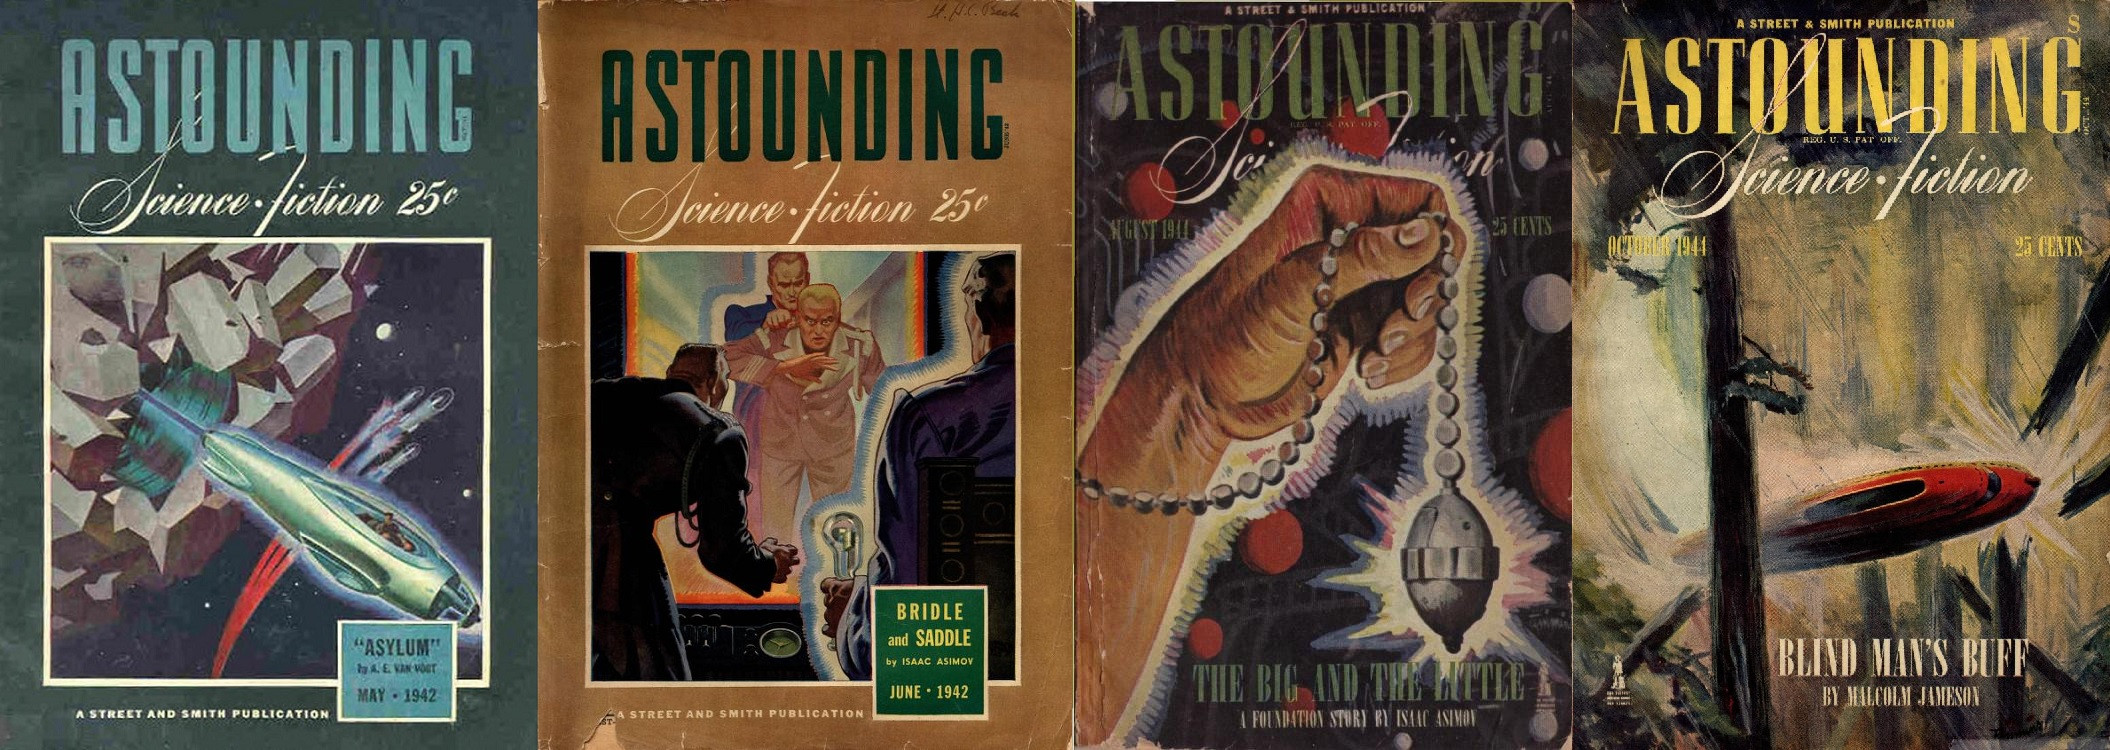 Prvé vydanie Nadácie v časopise  Astounding Science fiction. Kapitoly Foudation (neskôr premenované na The Encyclopedists) z mája 1942, Bridle and Saddle (The Mayors) z júna 1942, The Big and the Little (The Merchant Princes) z augusta 1944 a The Wedge (The Traders) z októbra 1944. Prvé vydanie Nadácie v časopise  Astounding Science fiction. Kapitoly Foudation (neskôr premenované na The Encyclopedists) z mája 1942, Bridle and Saddle (The Mayors) z júna 1942, The Big and the Little (The Merchant Princes) z augusta 1944 a The Wedge (The Traders) z októbra 1944.